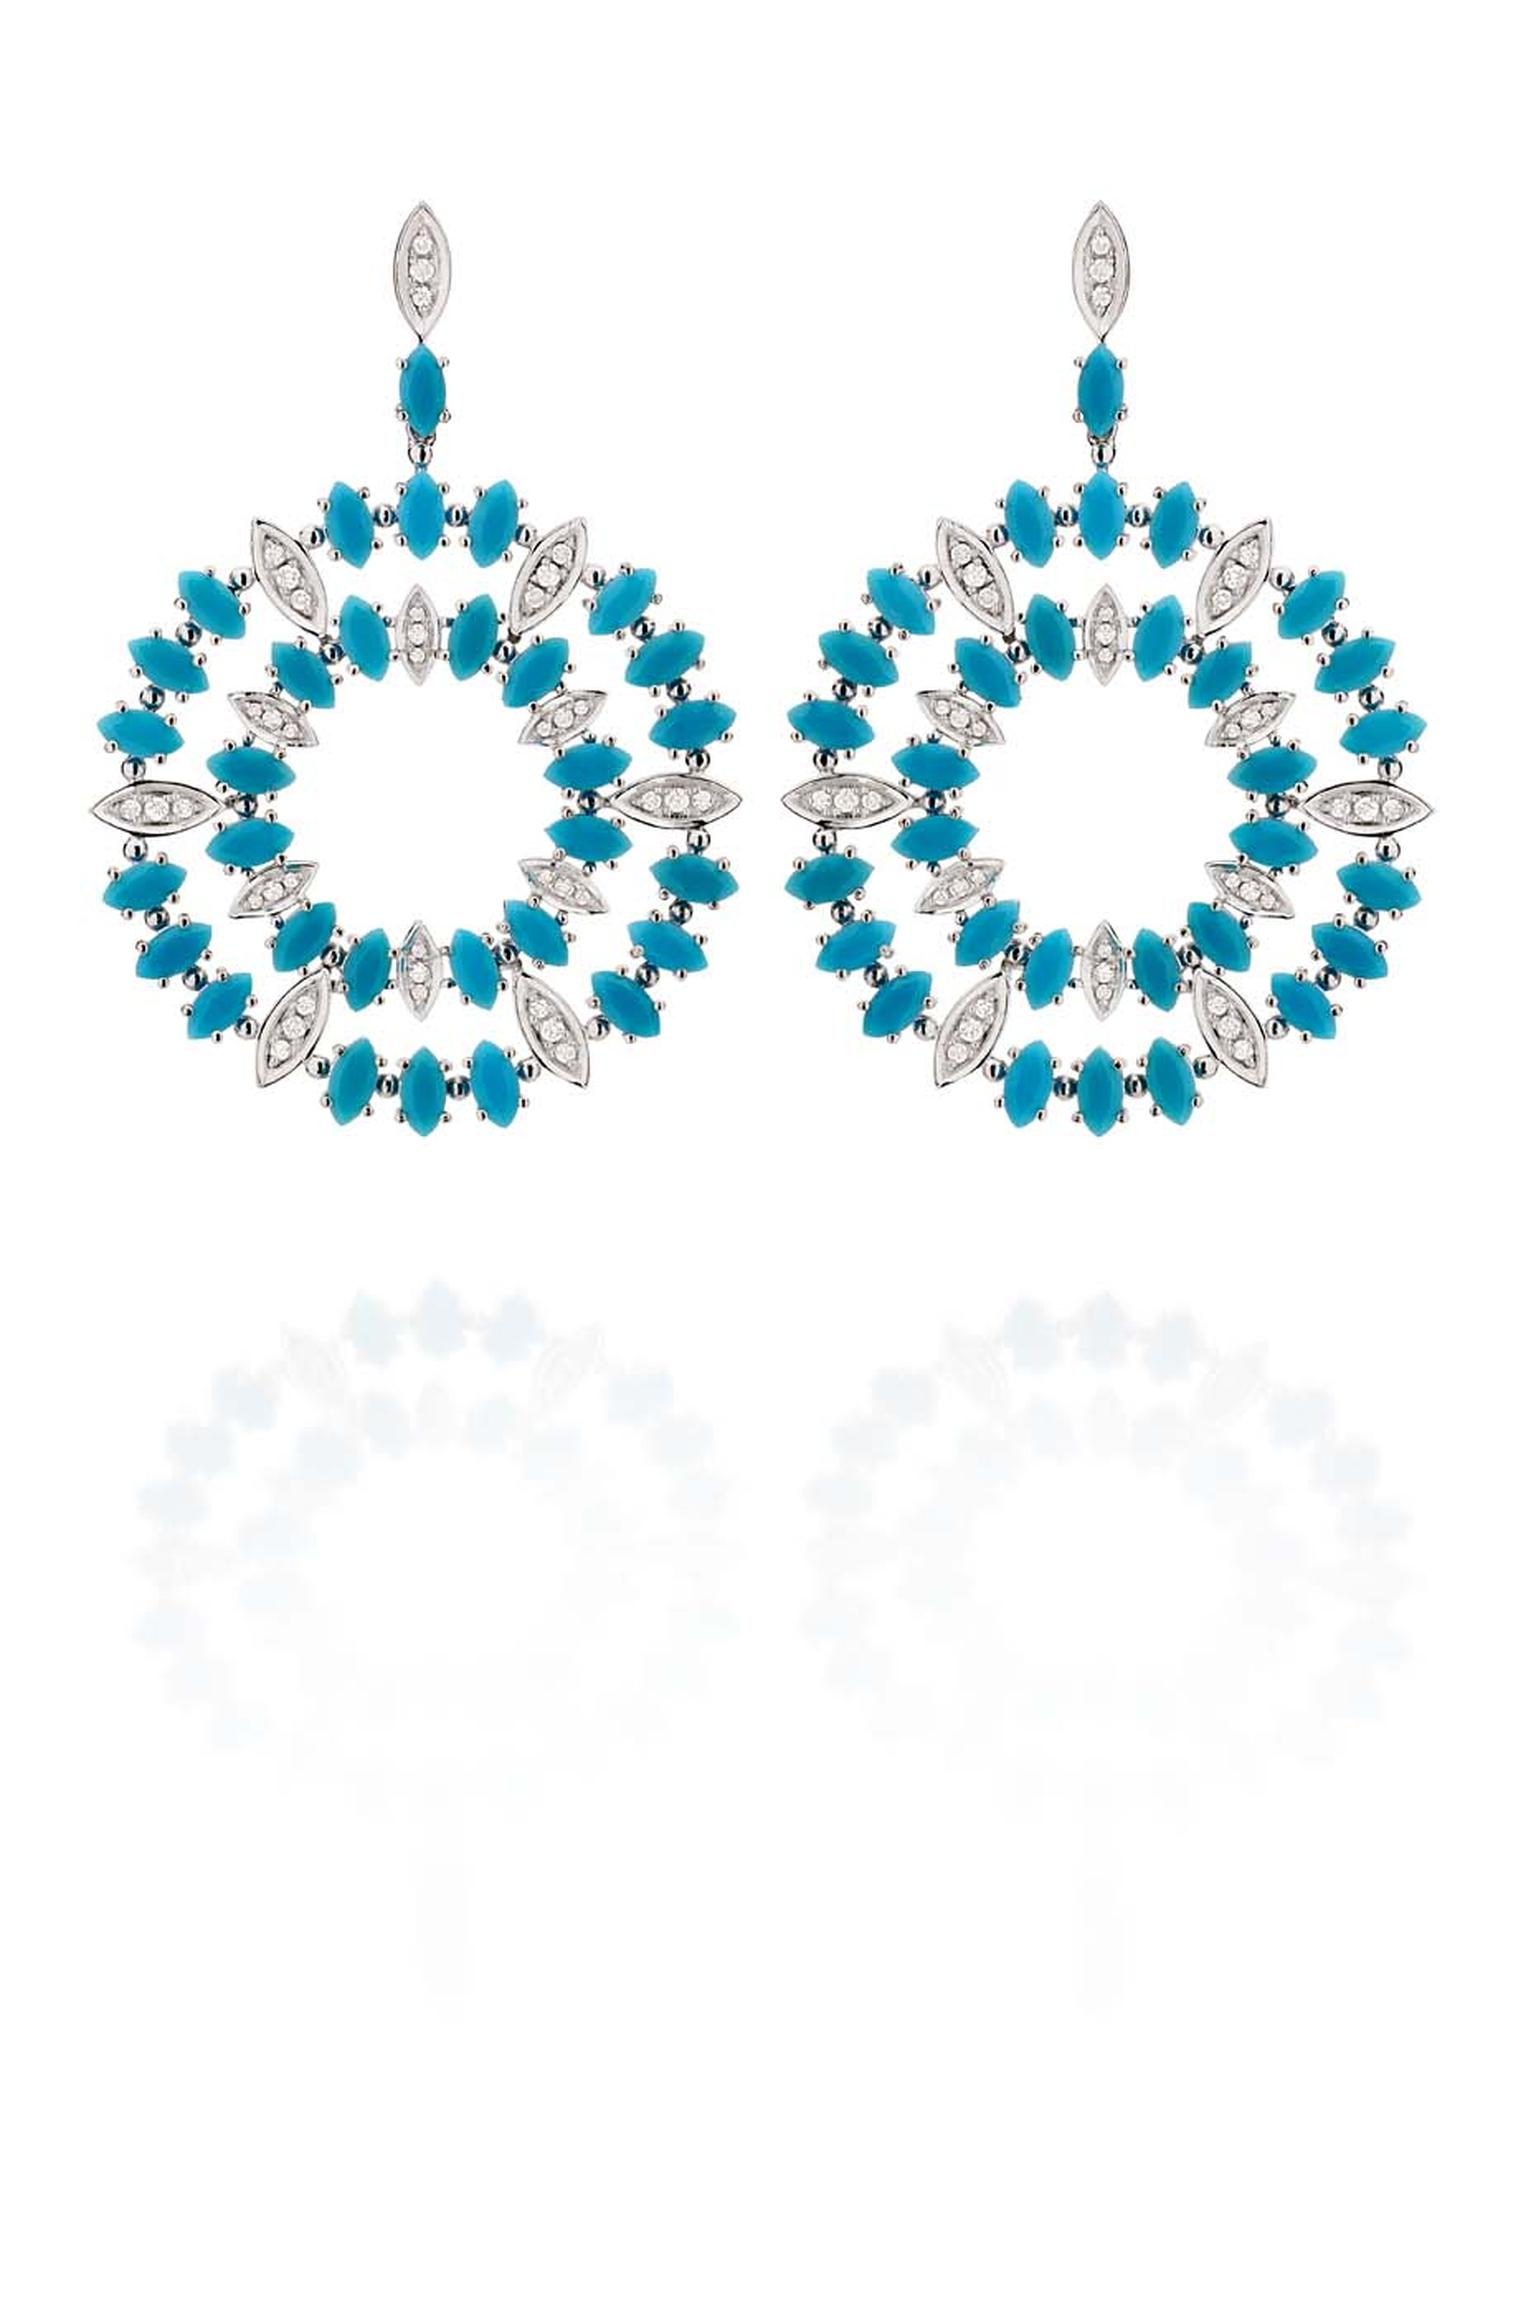 Carla Amorim white gold Aquario earrings with turquoise and white diamonds.